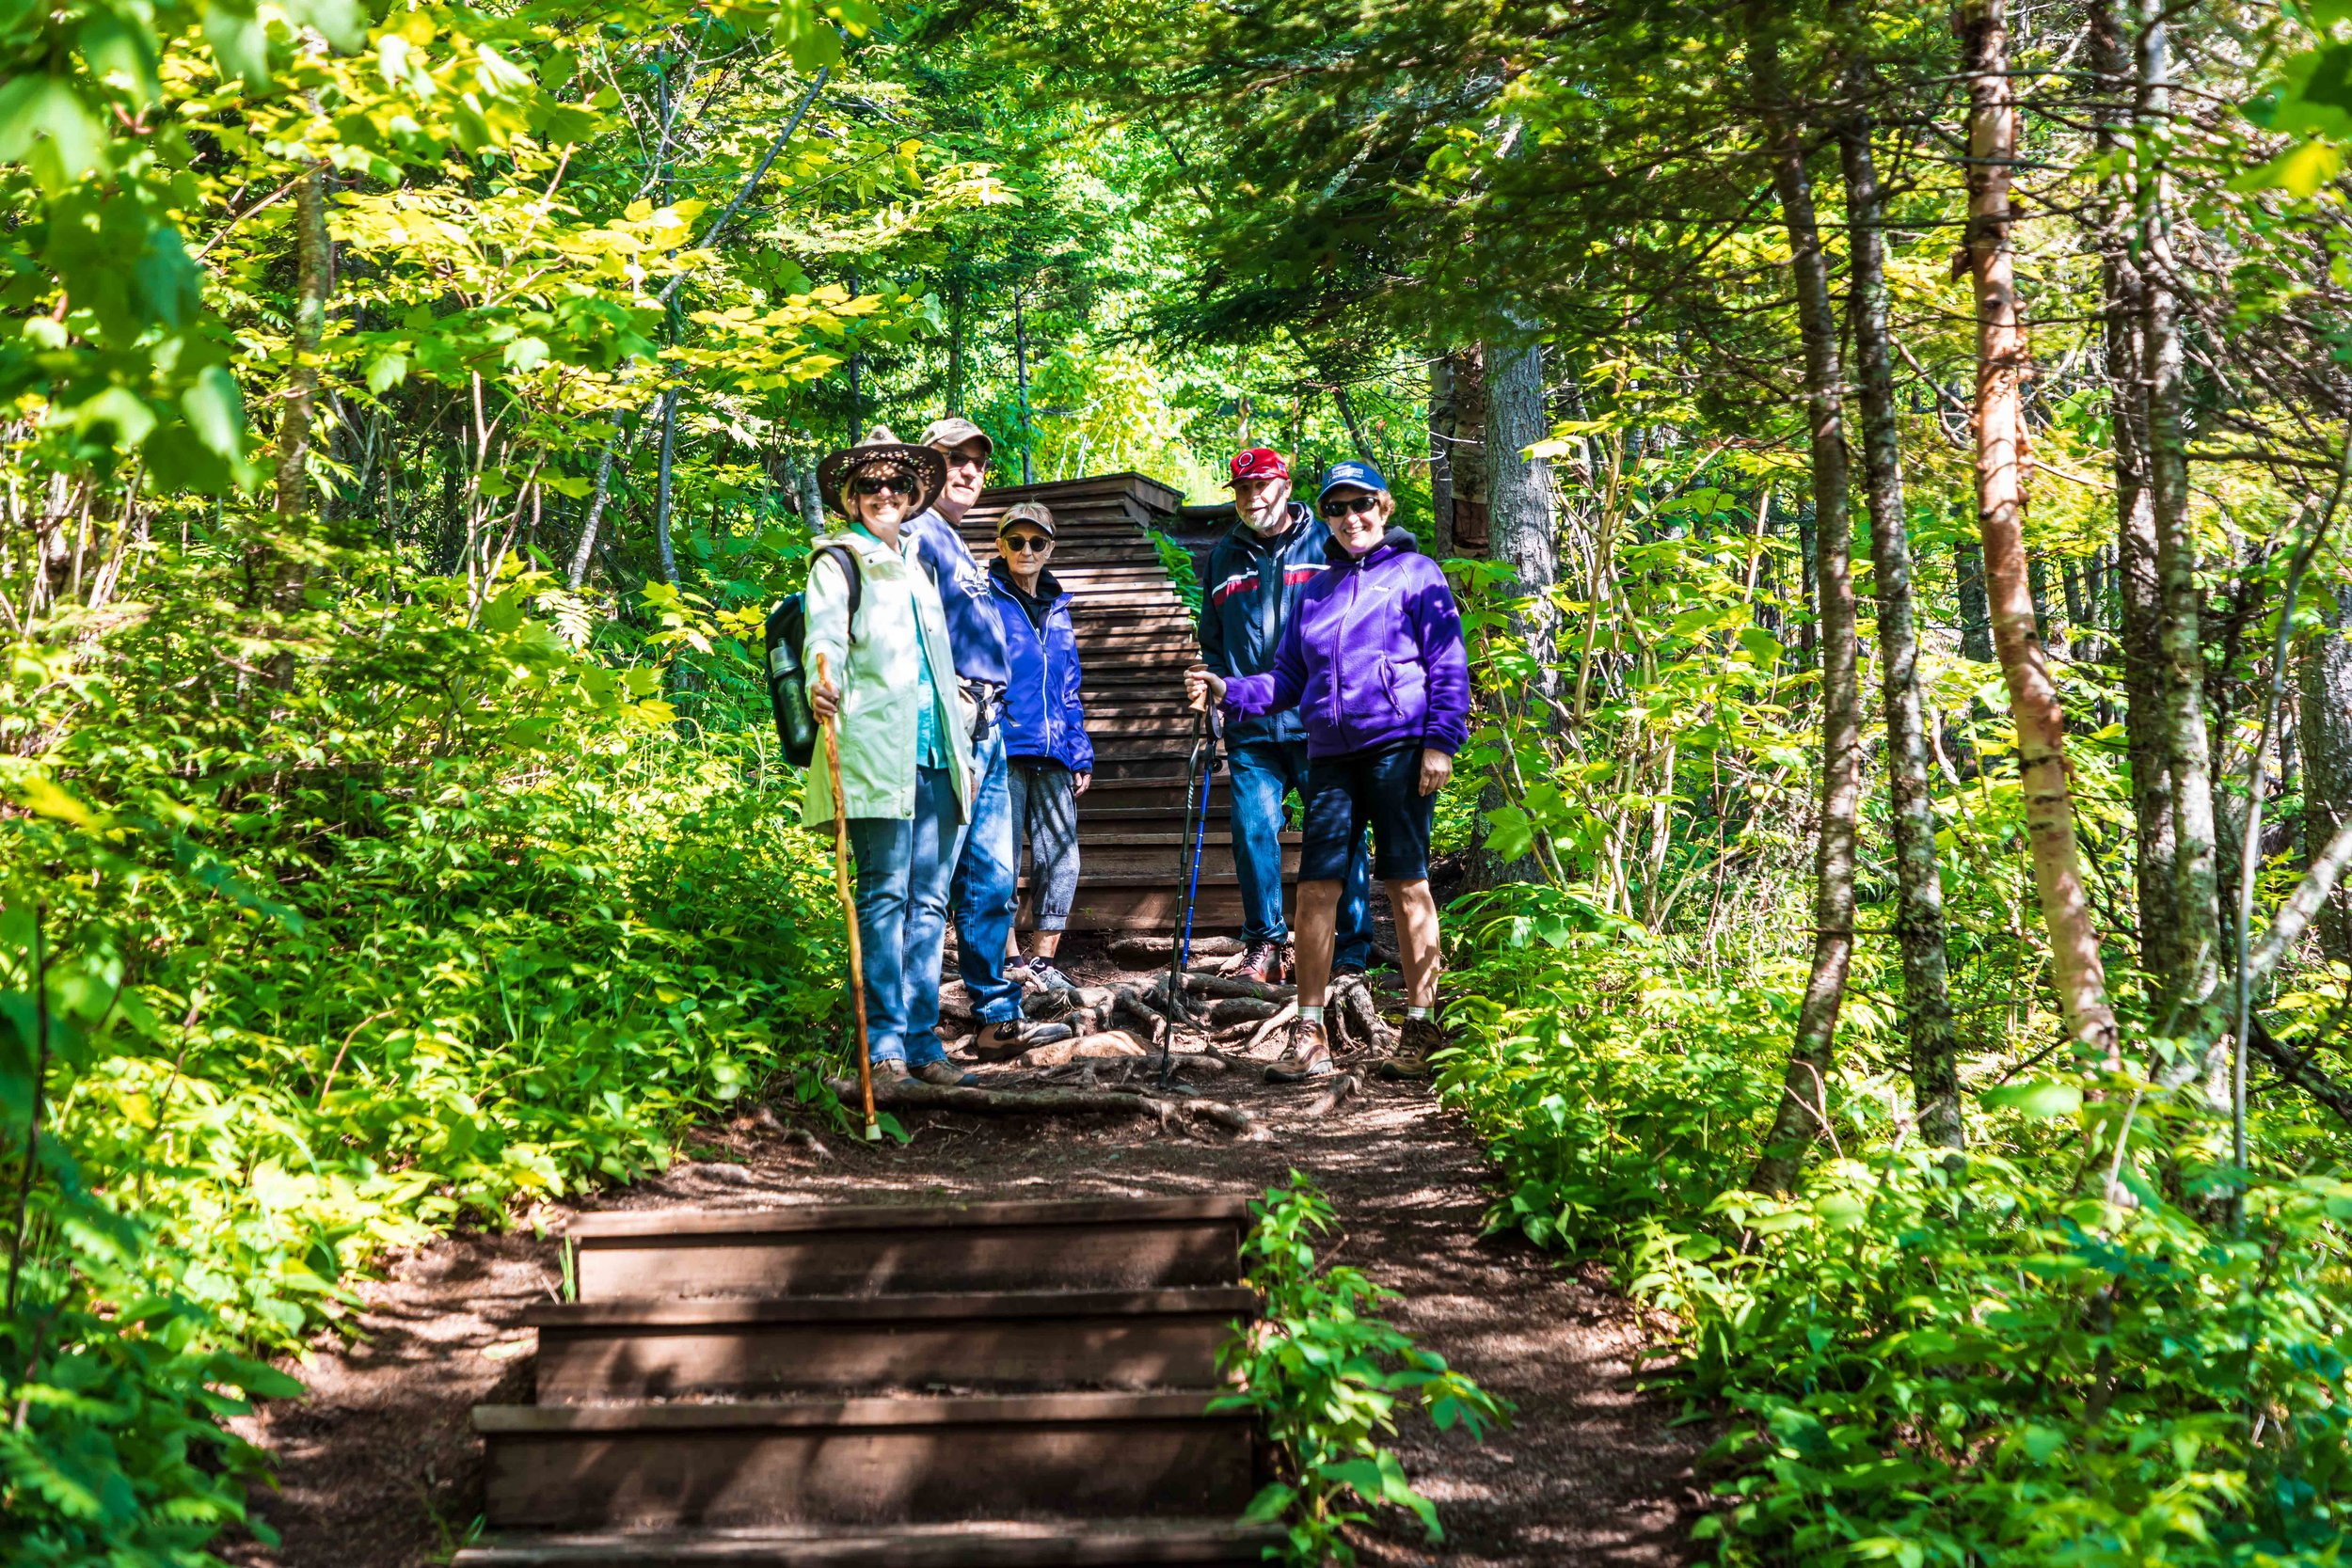 Minnesota North Shore Forest: Up or Down?